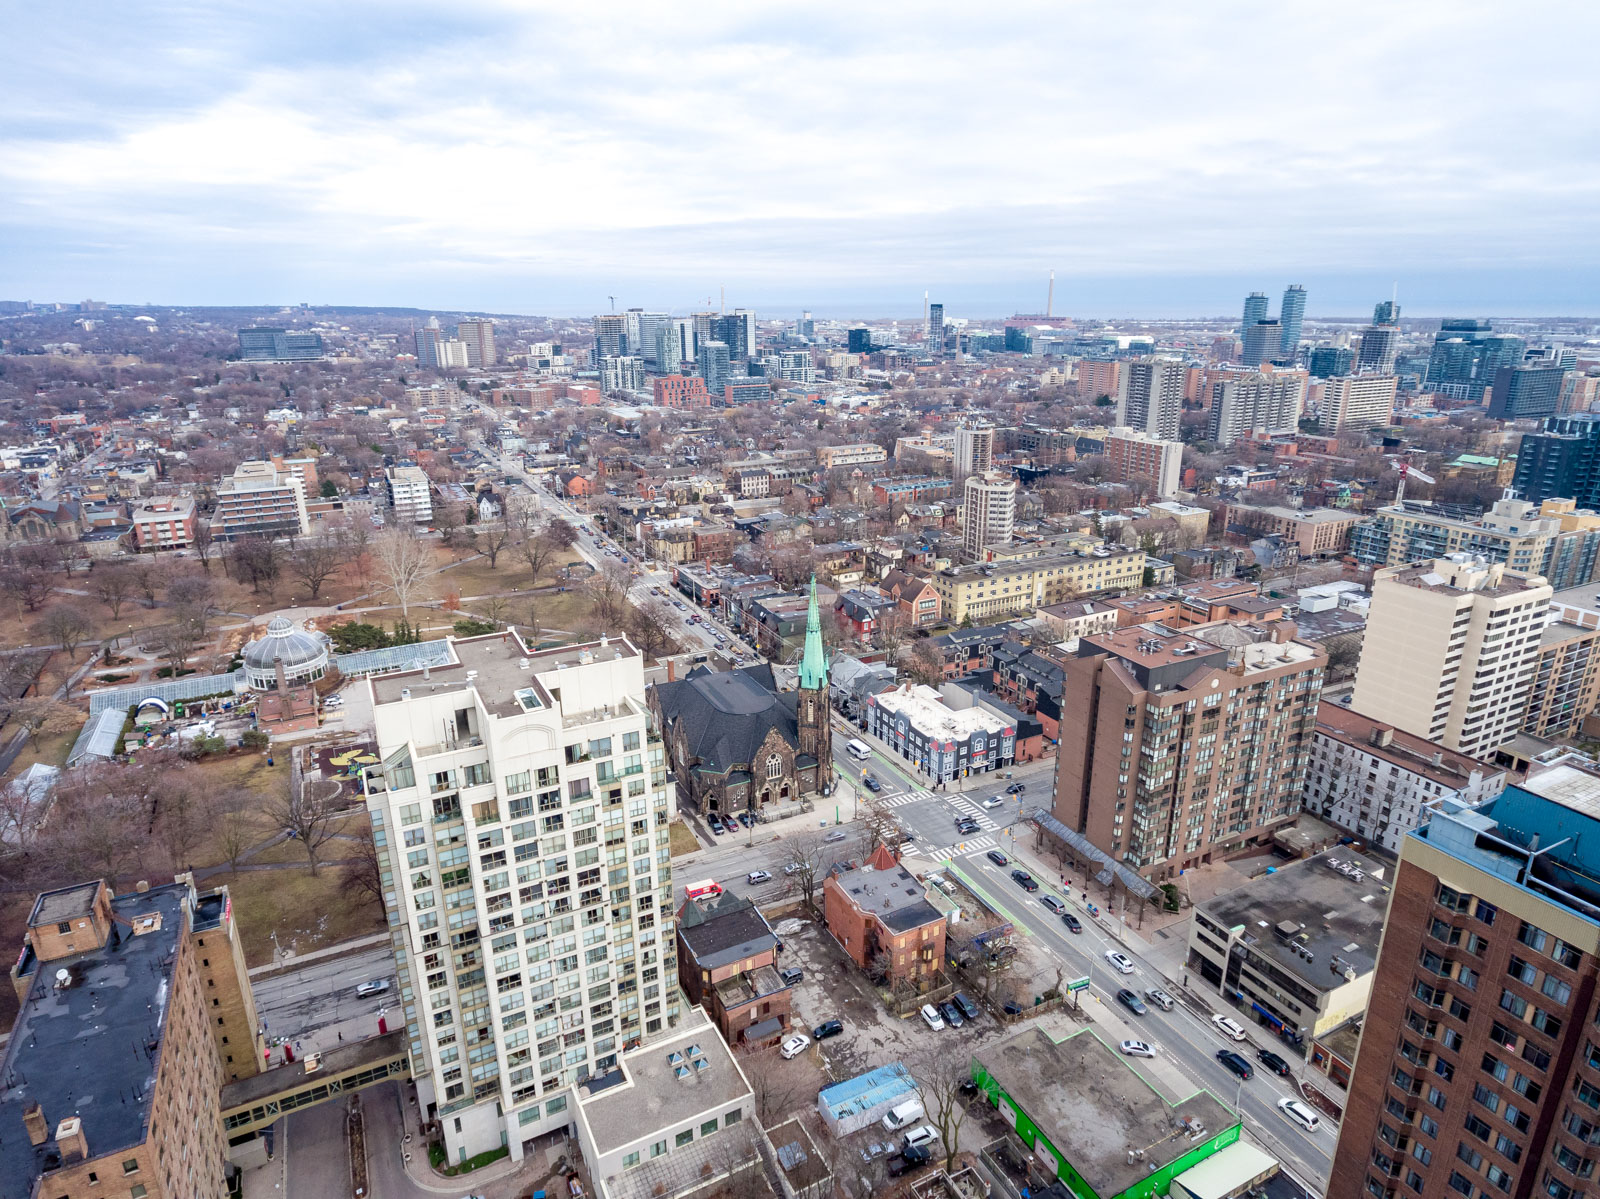 Aerial photo of 120 McGill St, parks and buildings.